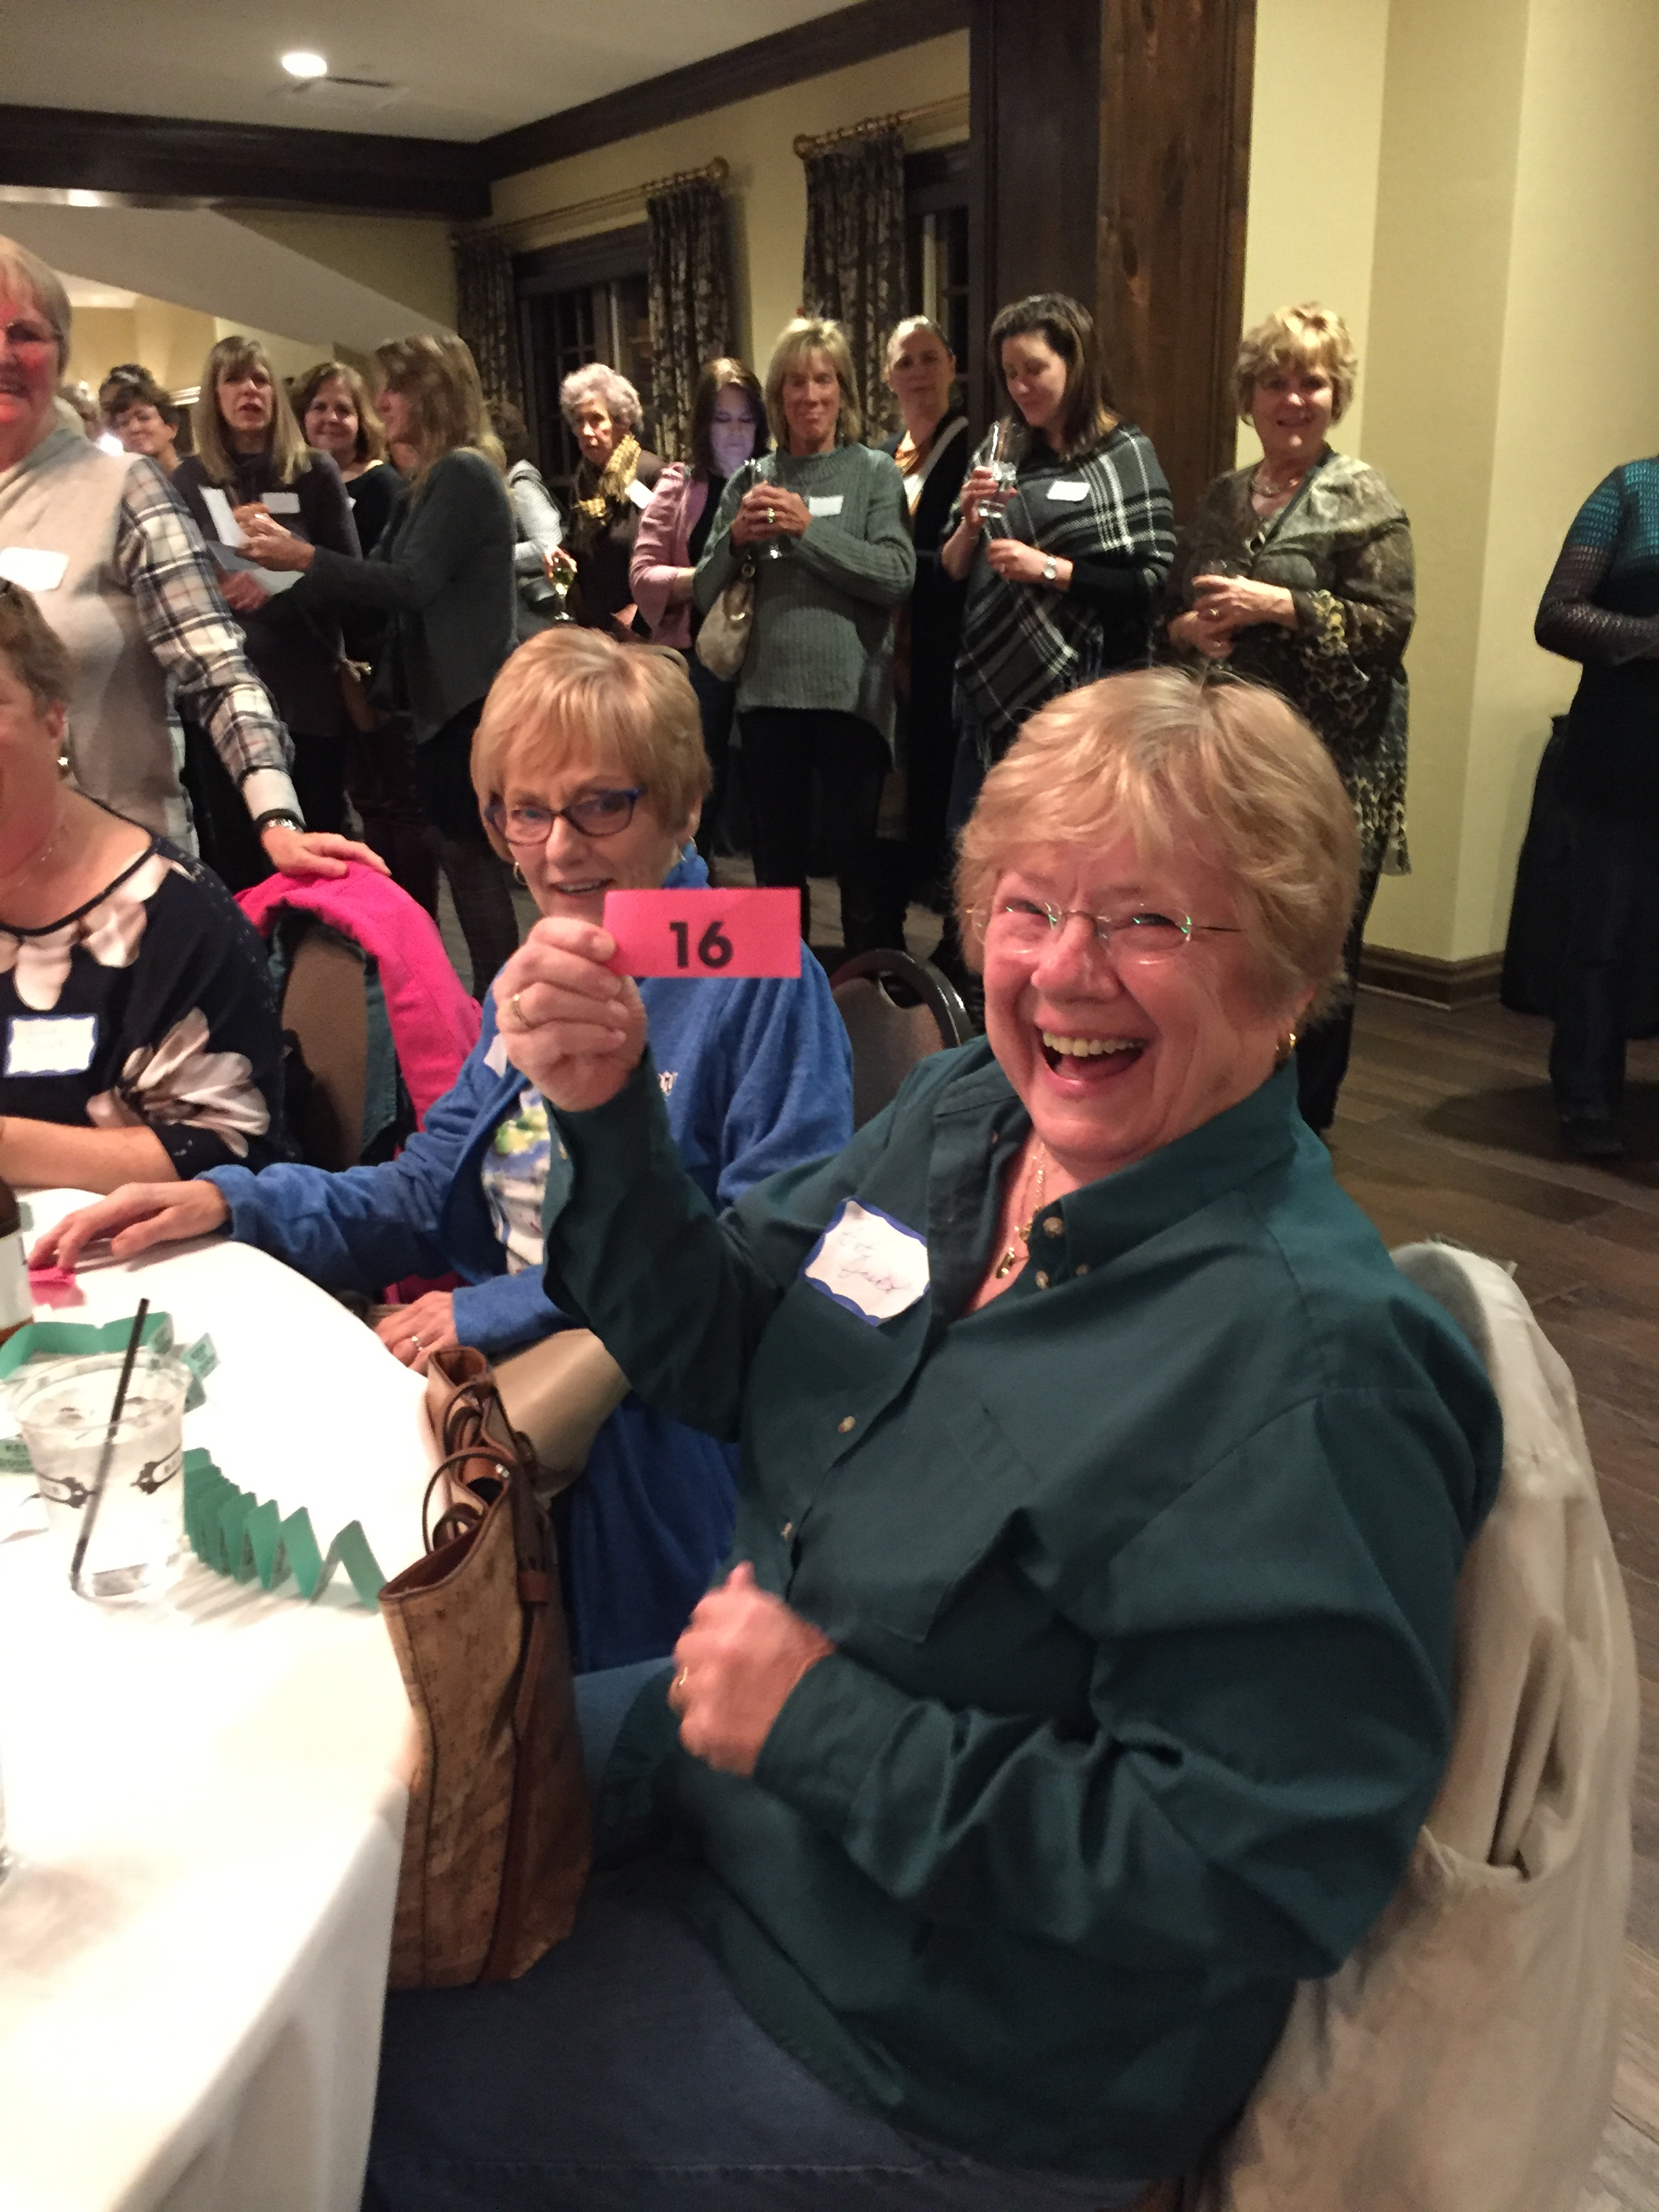 Girls' Night Out Event Raises $4163 for Beloit Meals on Wheels